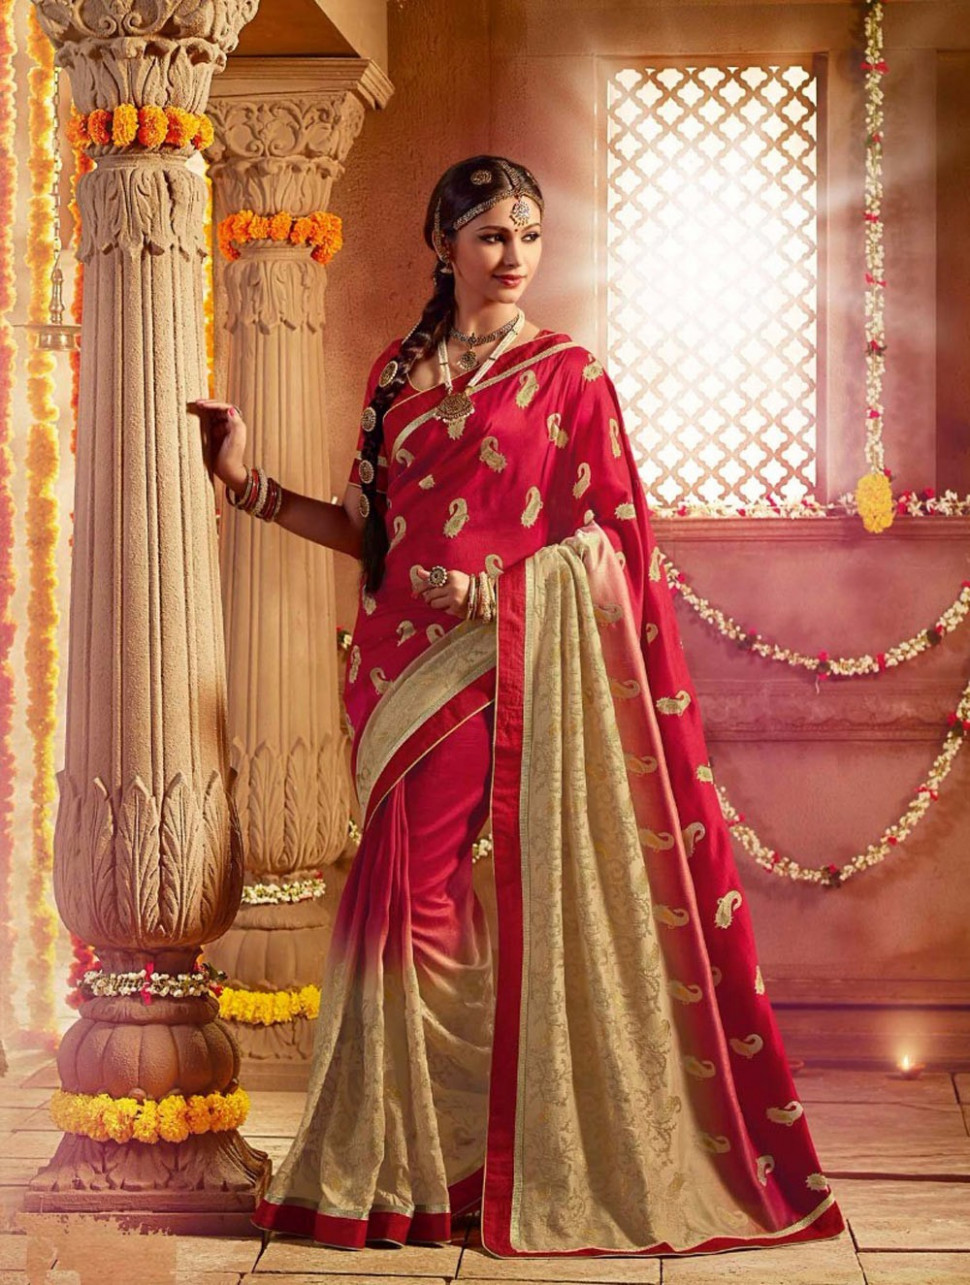 All-inclusive guide on Types of sarees - FashionPro